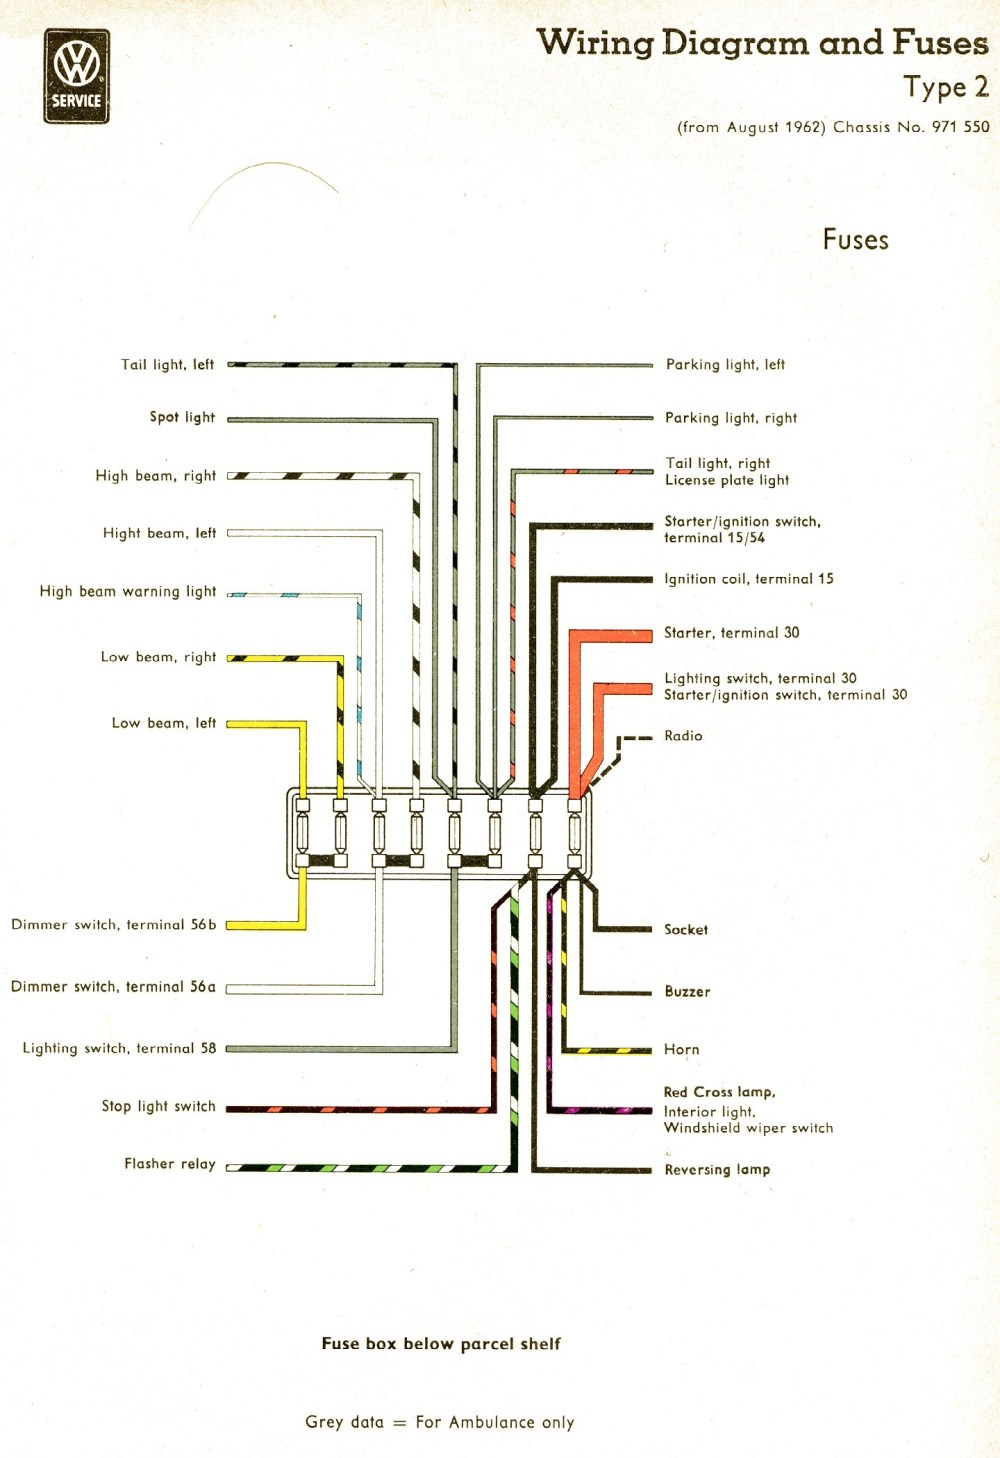 medium resolution of 73 beetle fuse diagram wiring diagrams konsult 1973 vw beetle fuse box location 1973 beetle fuse box